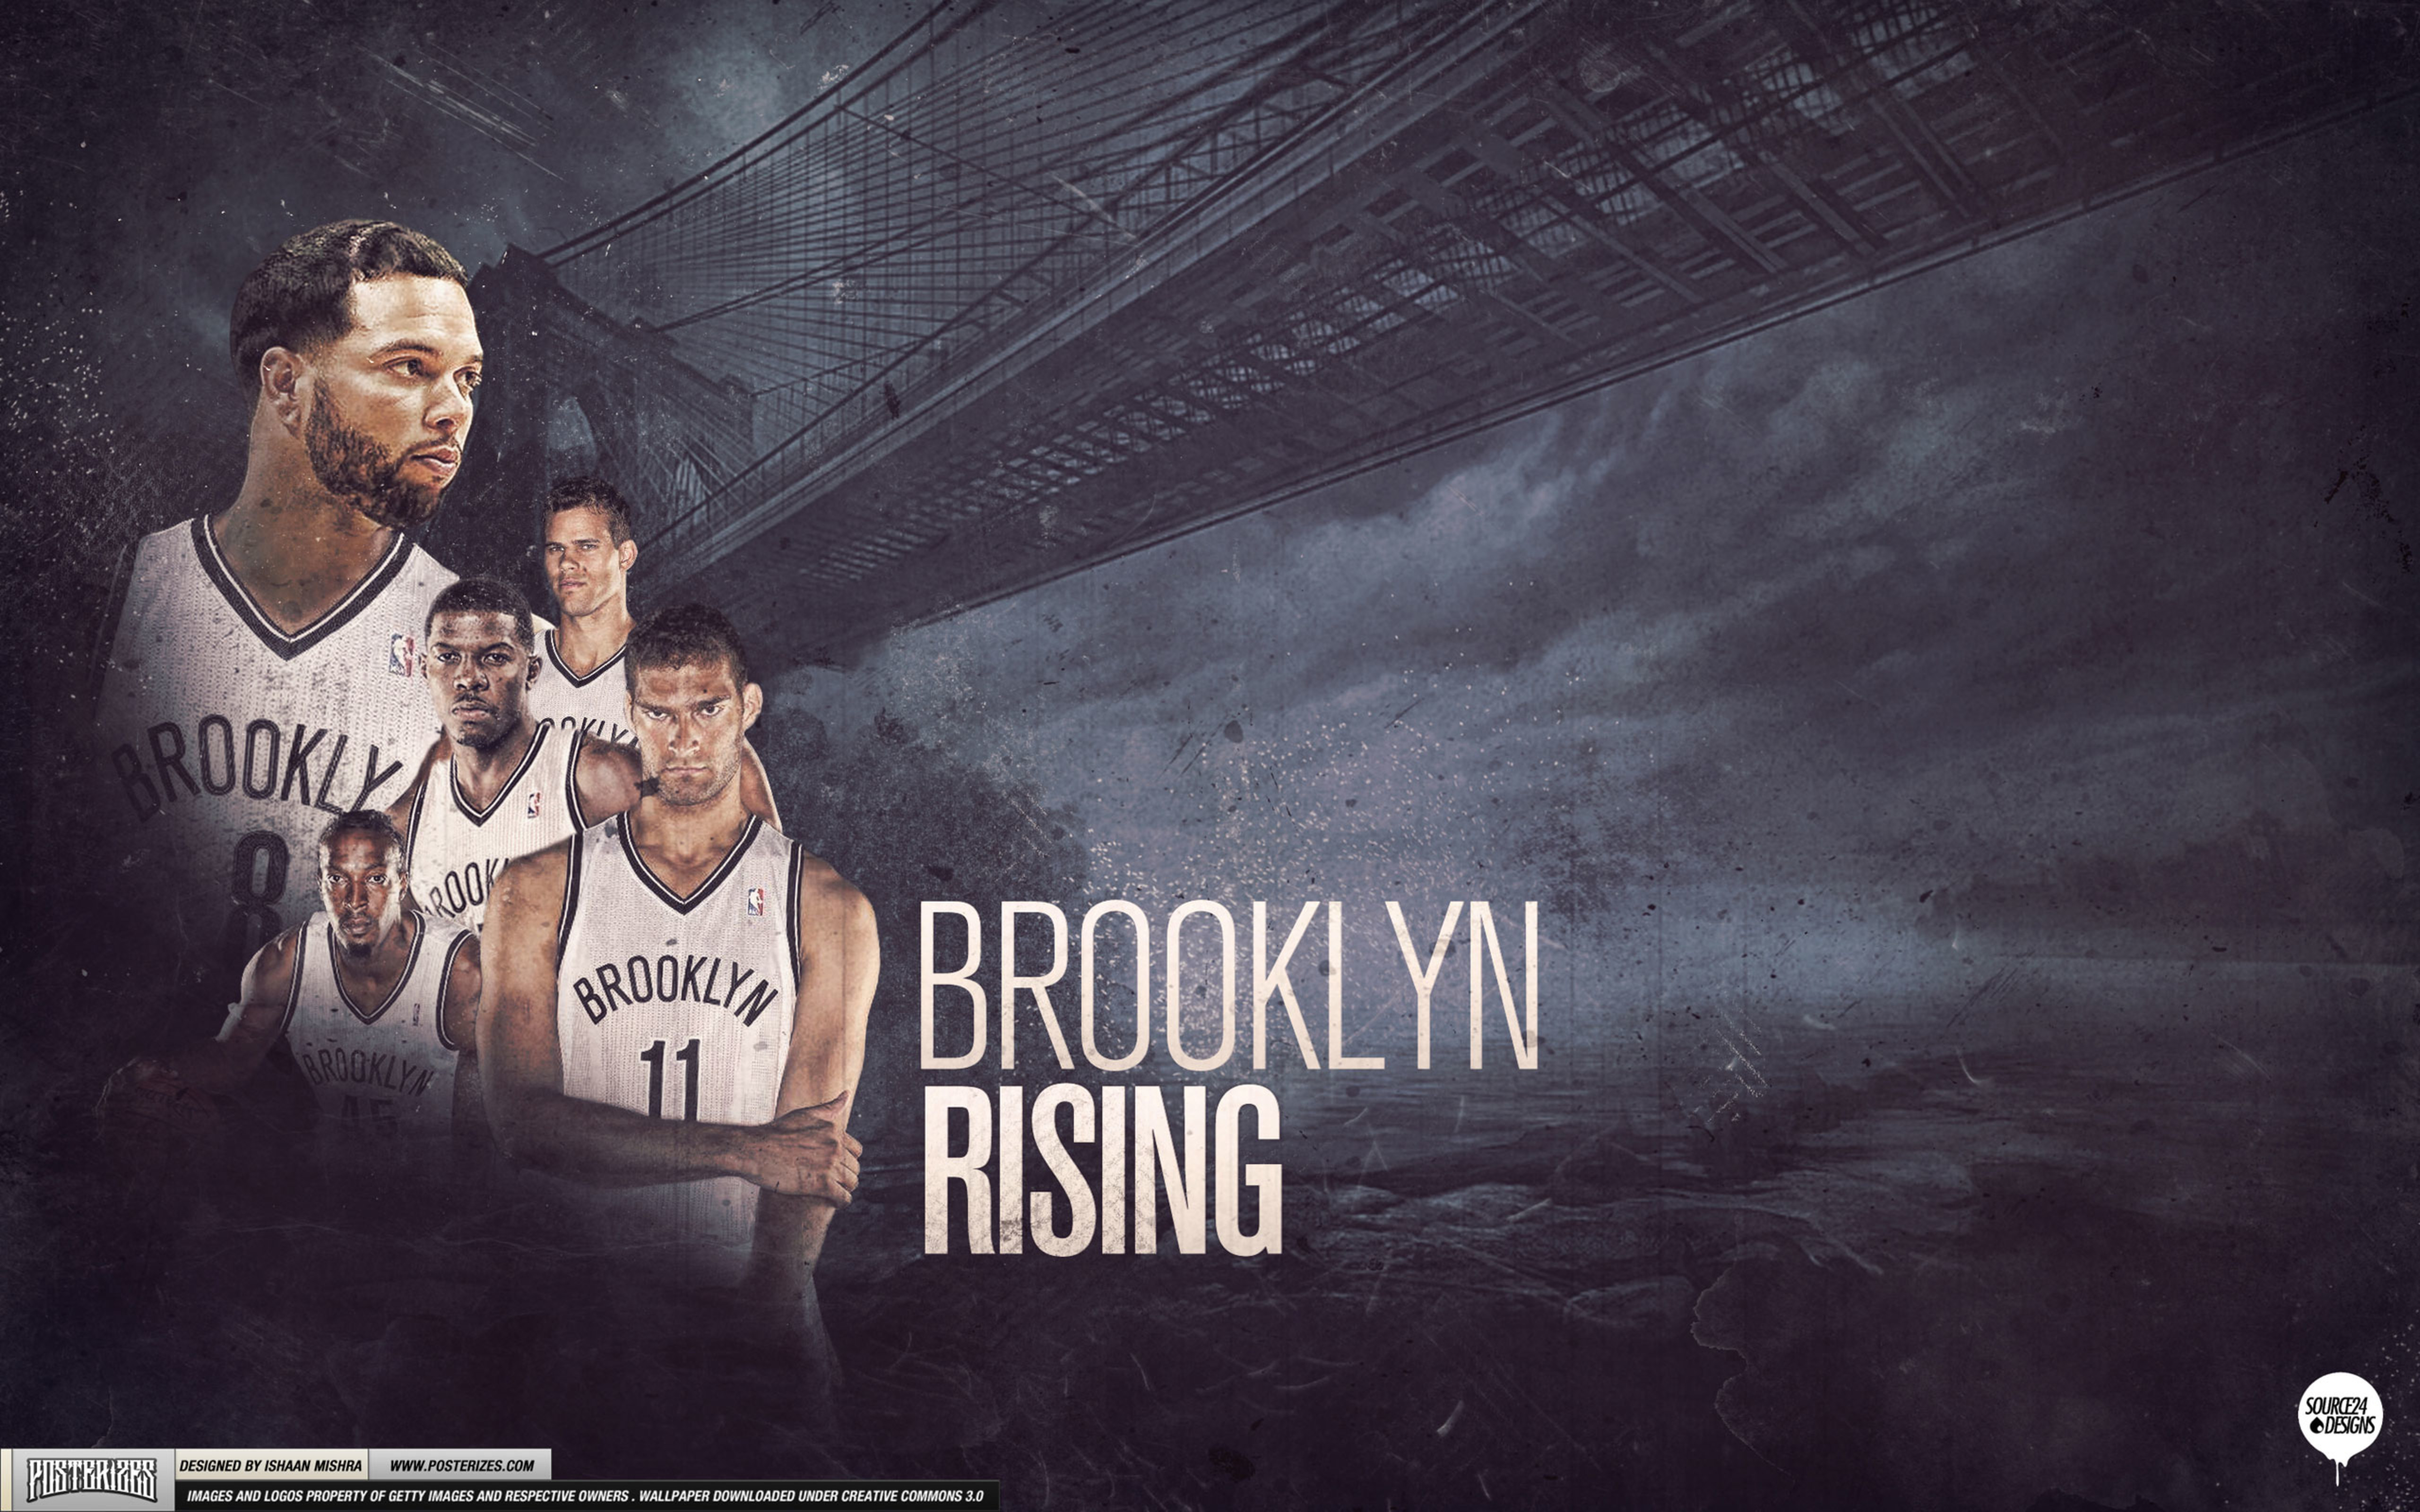 Free Download Brooklyn Nets Rising Famous Basketball Player Hd Wallpaper 5120x3200 For Your Desktop Mobile Tablet Explore 49 Nets Wallpaper Nets Wallpaper Brooklyn Nets Wallpapers Brooklyn Nets Wallpaper